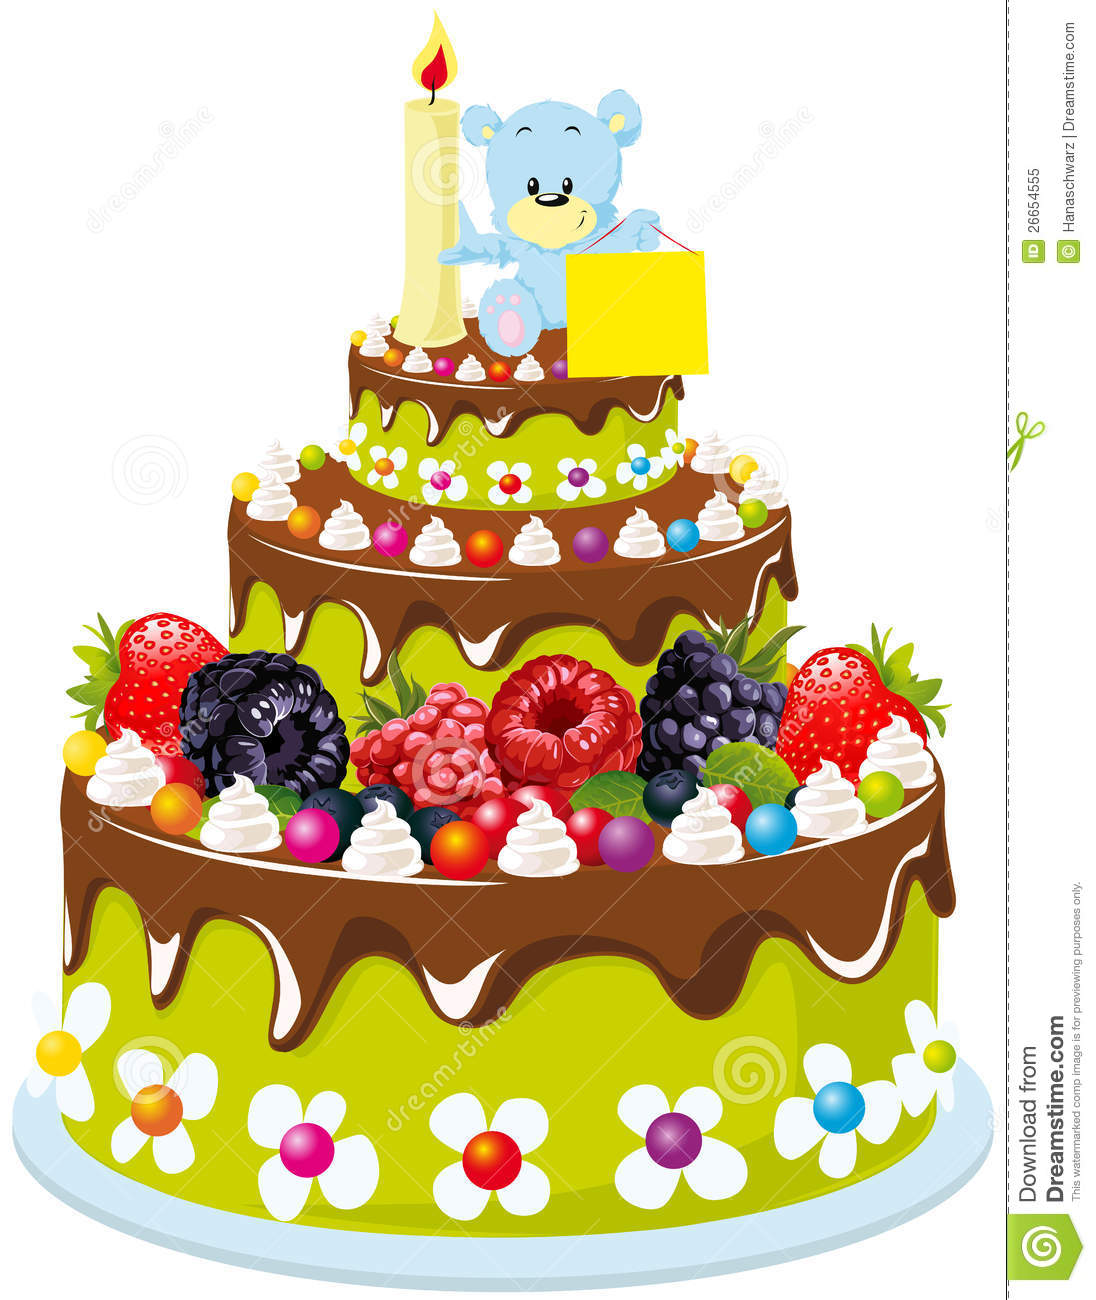 Fruit Cake Illustration